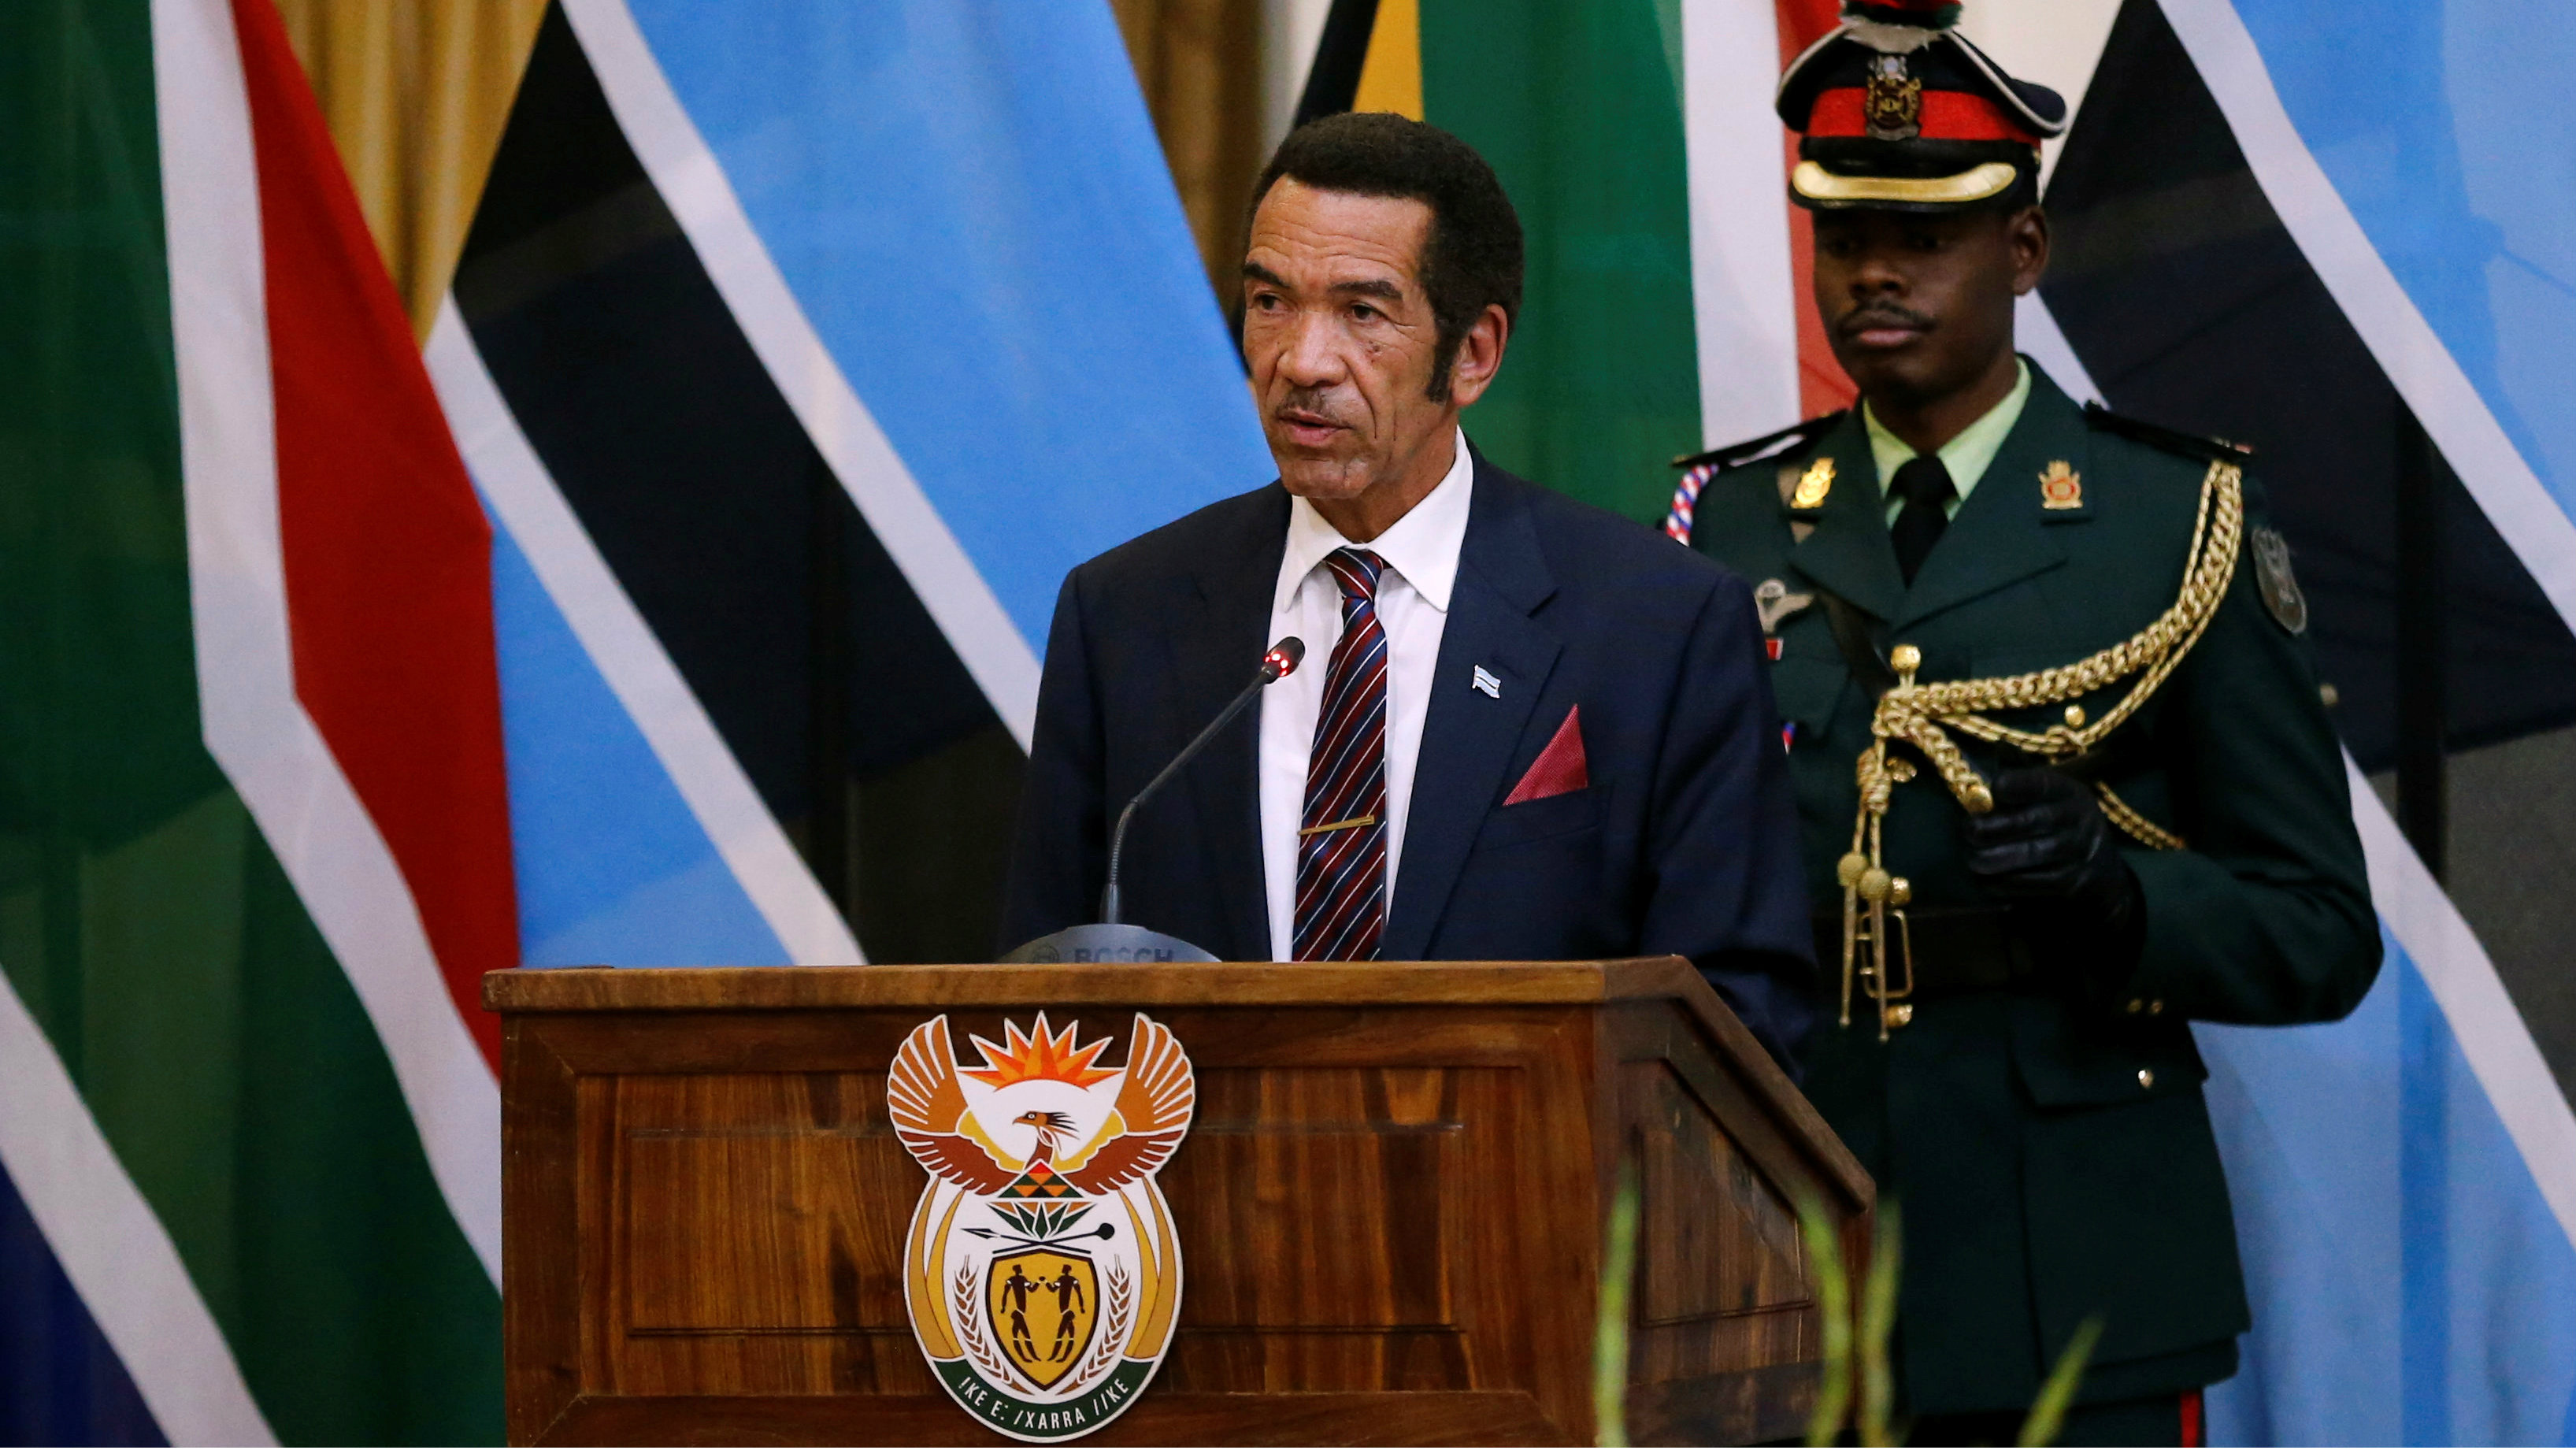 Botswana's President Ian Khama speaks during the Botswana-South Africa Bi-National Commission (BNC) in Pretoria, South Africa, November 11, 2016.